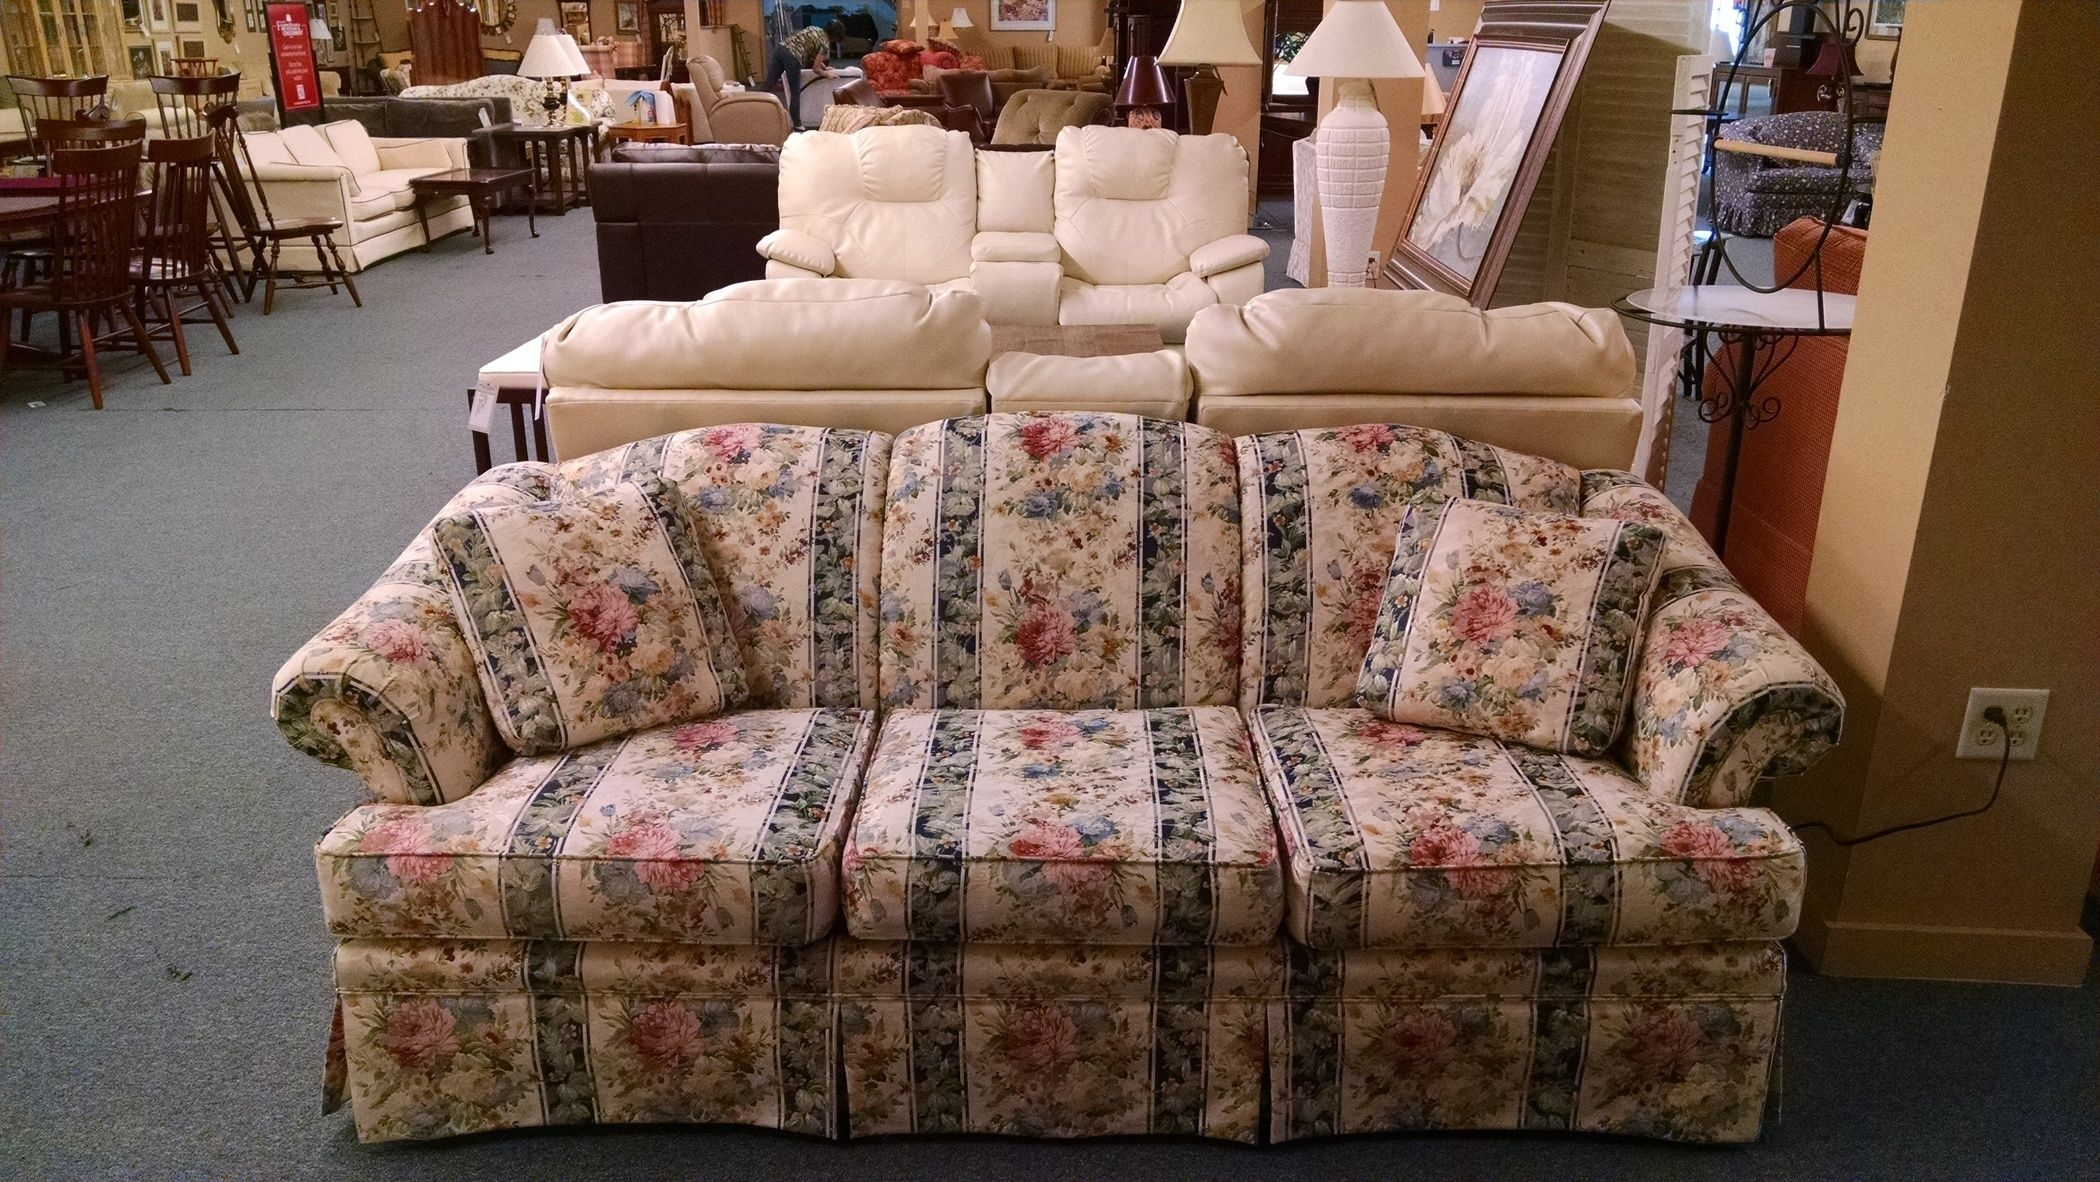 55 Floral Sofa 1000 Ideas About Floral Sofa On Pinterest Country For Chintz Floral Sofas (Image 1 of 15)